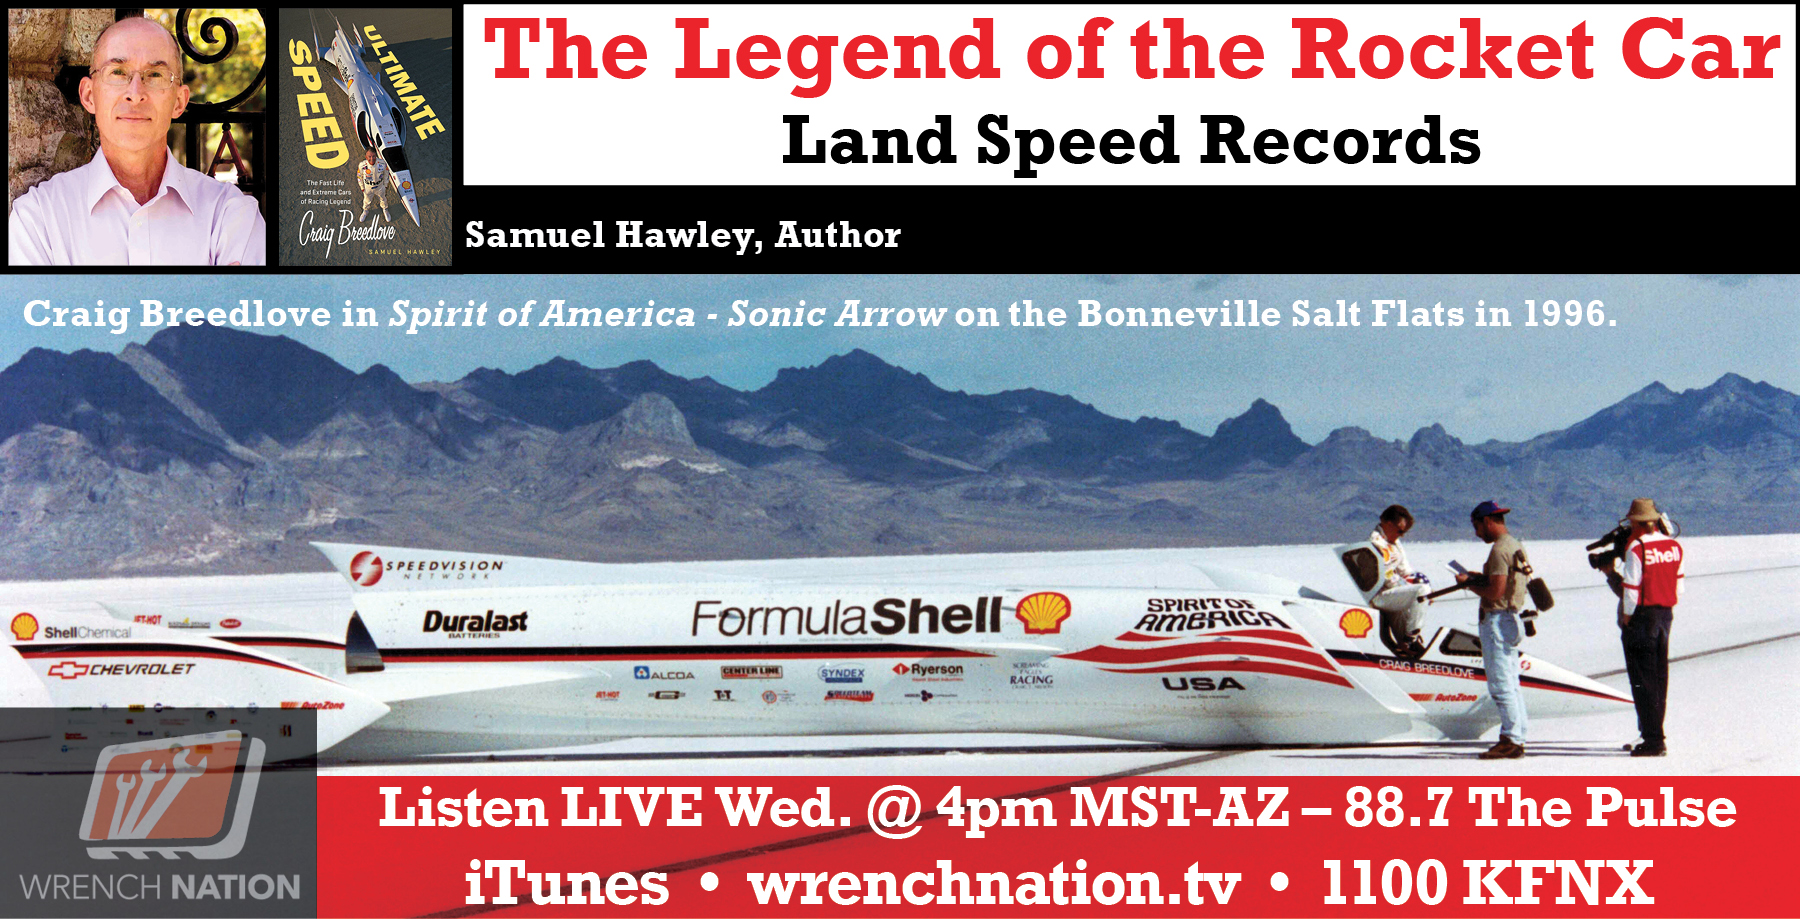 #138 Land Speed Record Samuel Hawley -Craig Breedlove Spirit of America